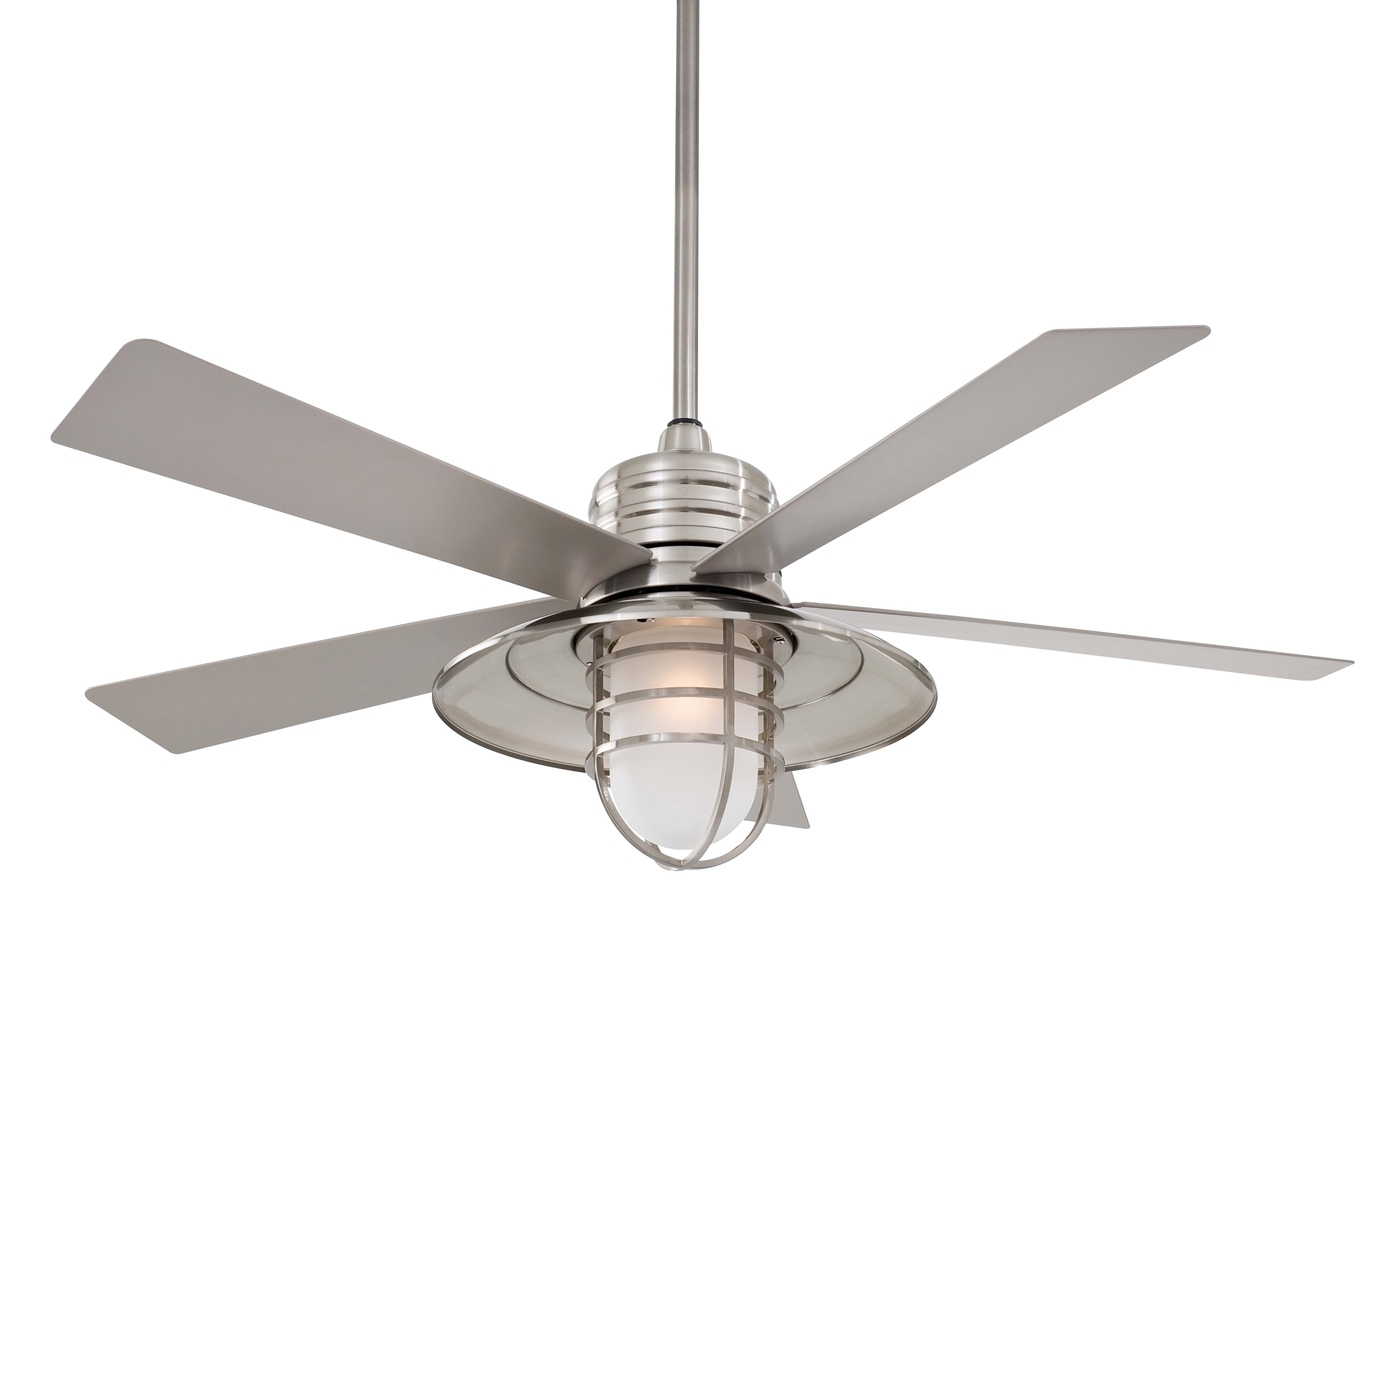 Favorite Rustic Outdoor Ceiling Fans For Ceiling Fan: Best Outdoor Ceiling Fans Design Ceiling Fan With Light (View 19 of 20)